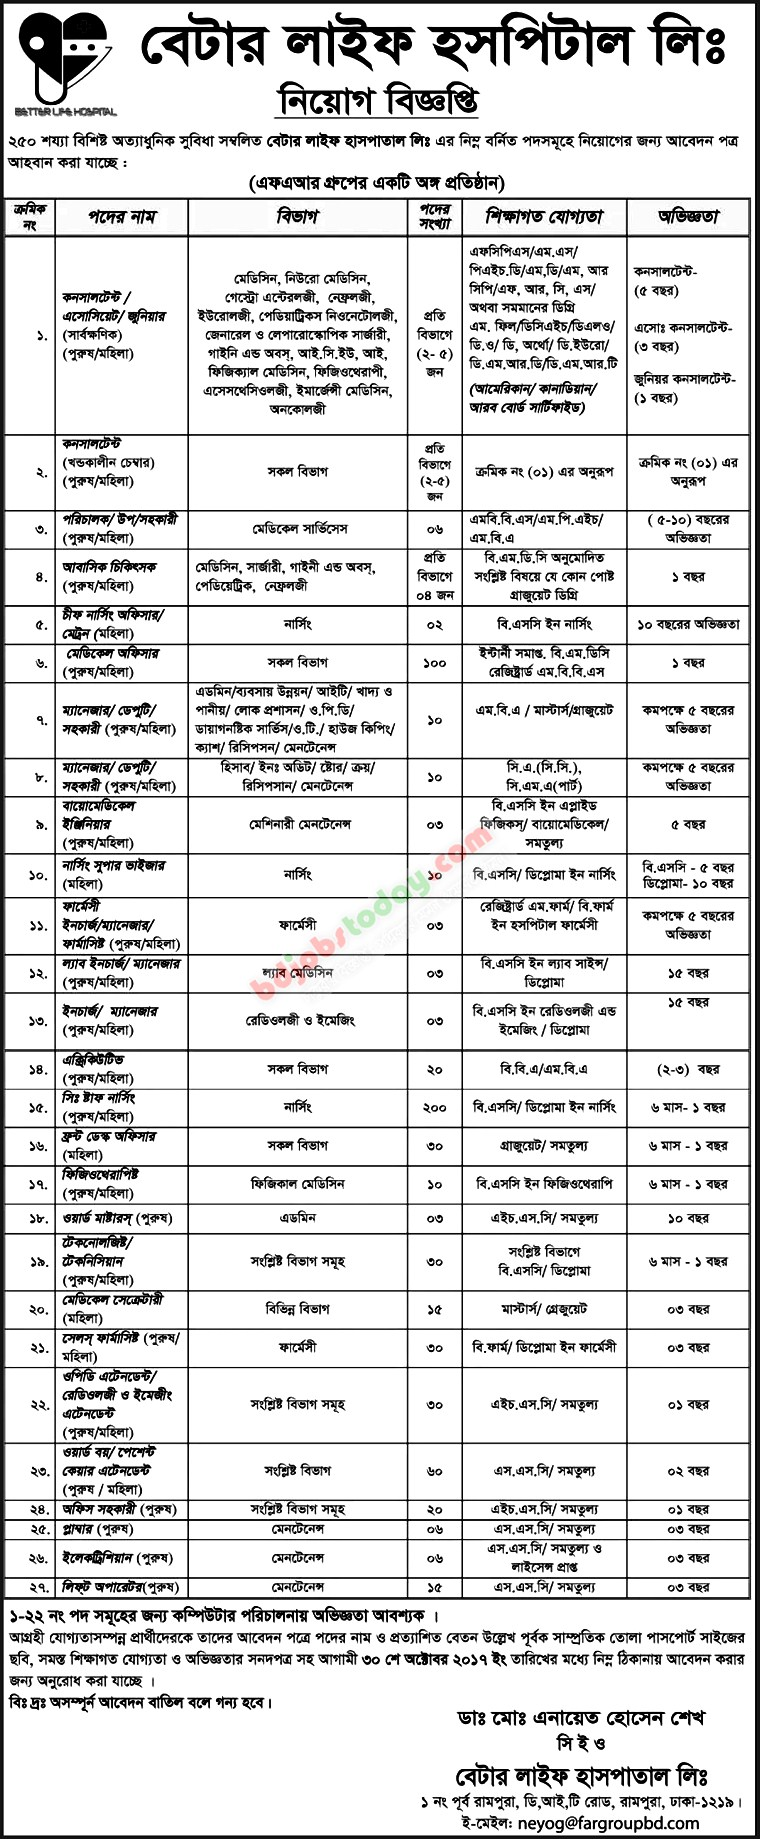 Better Life Hospital Ltd jobs